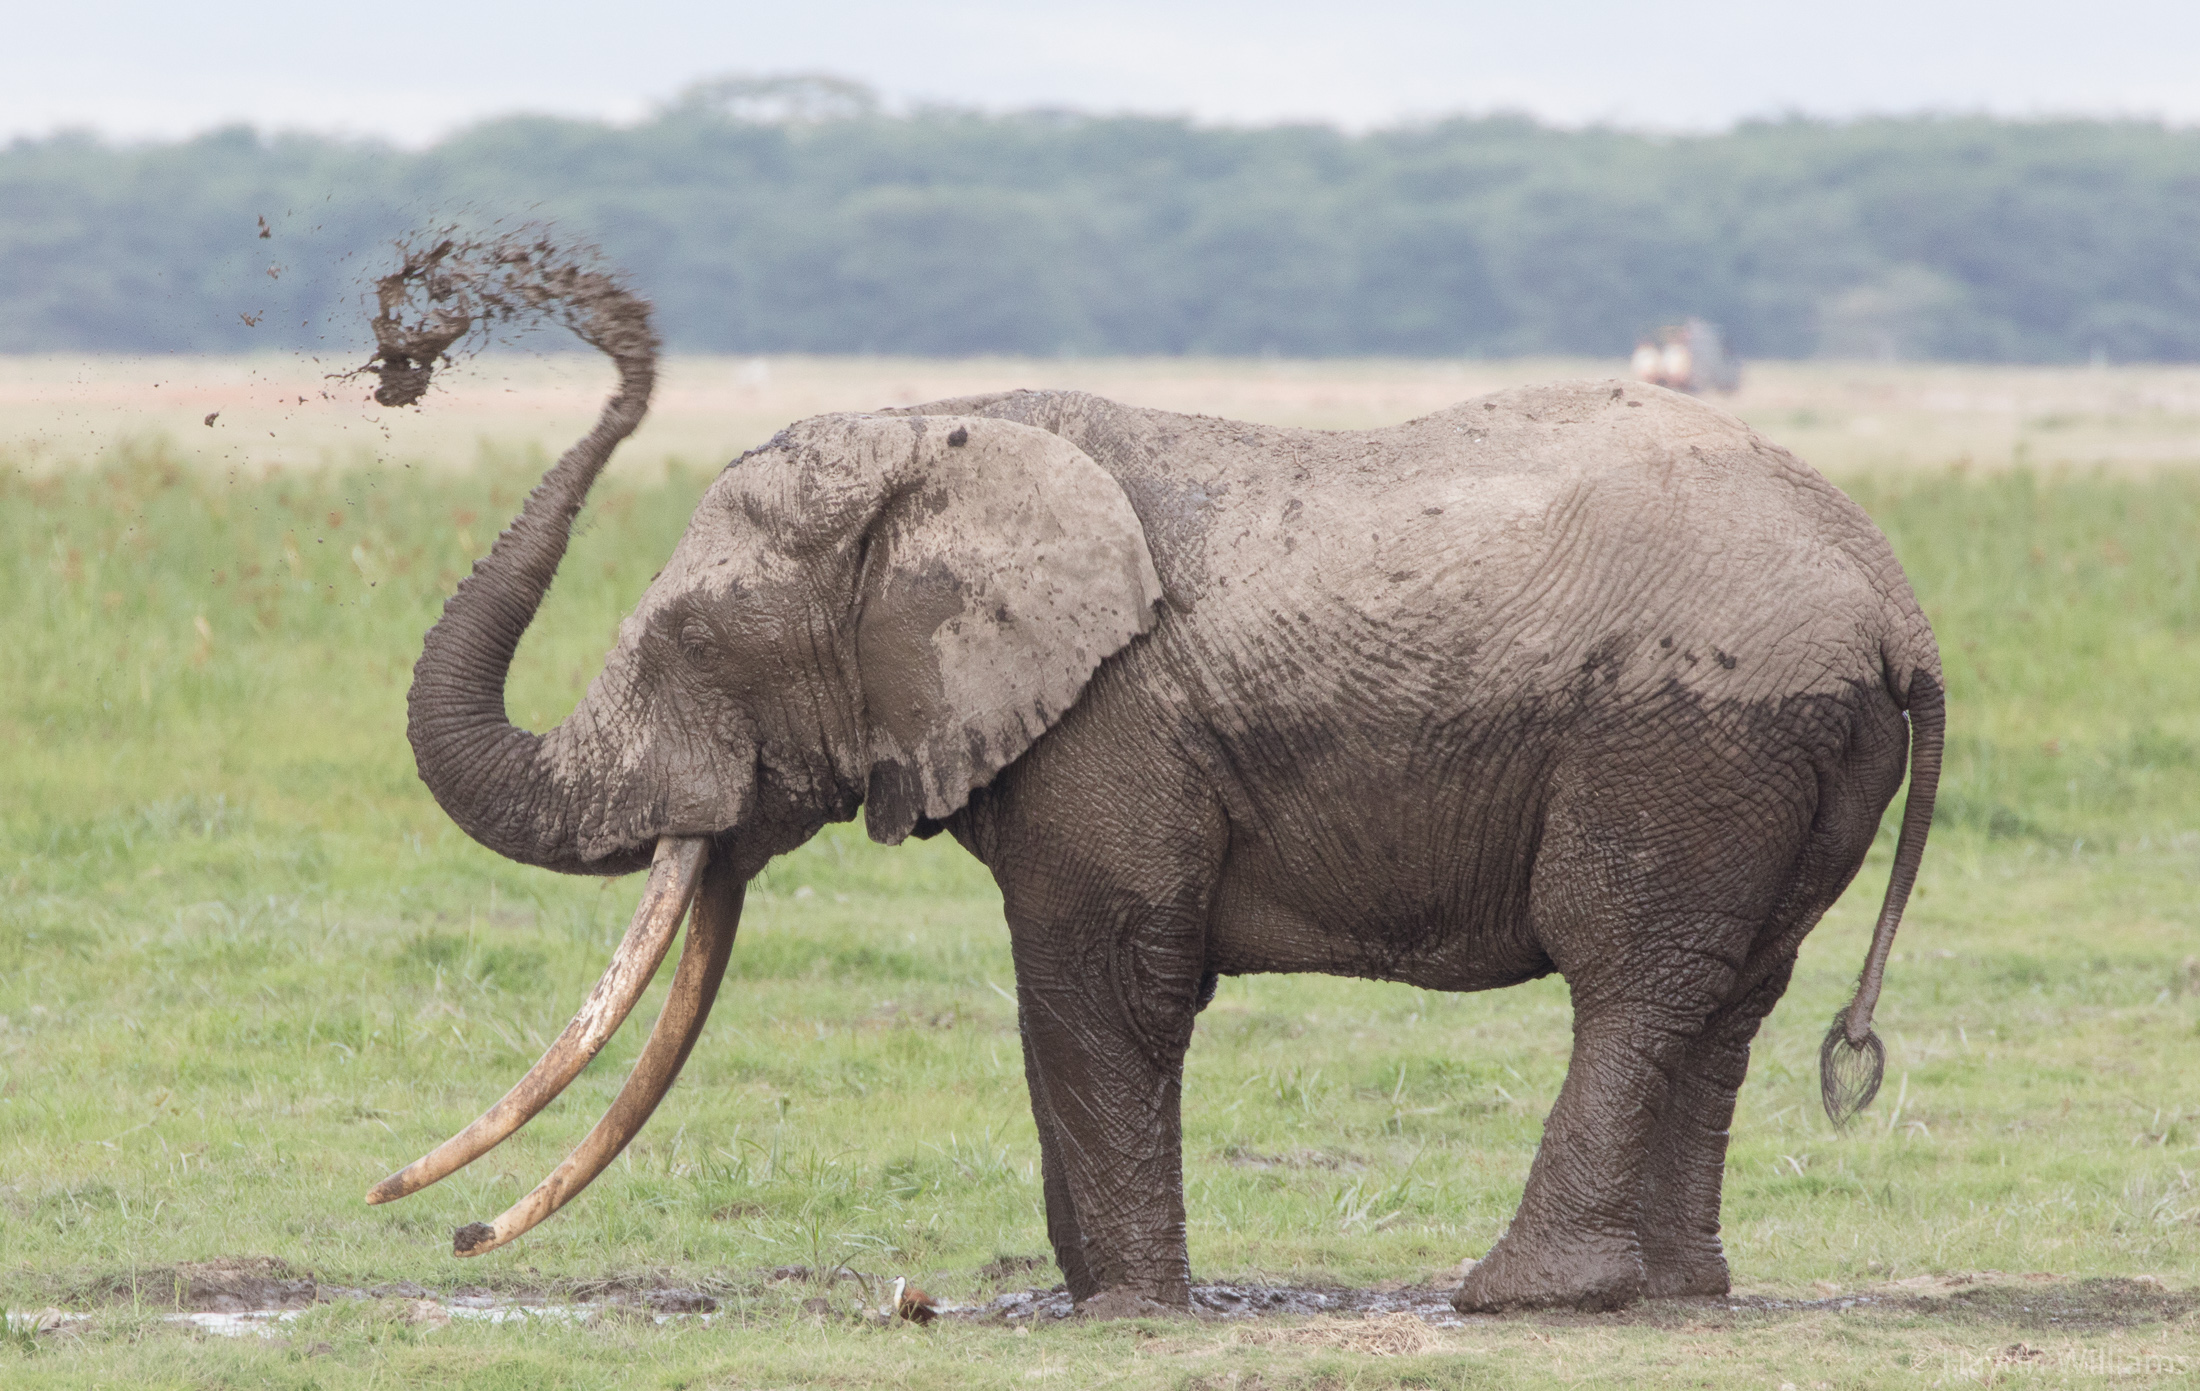 Elephant cooling down with swamp mud. © Haydn Williams 2019